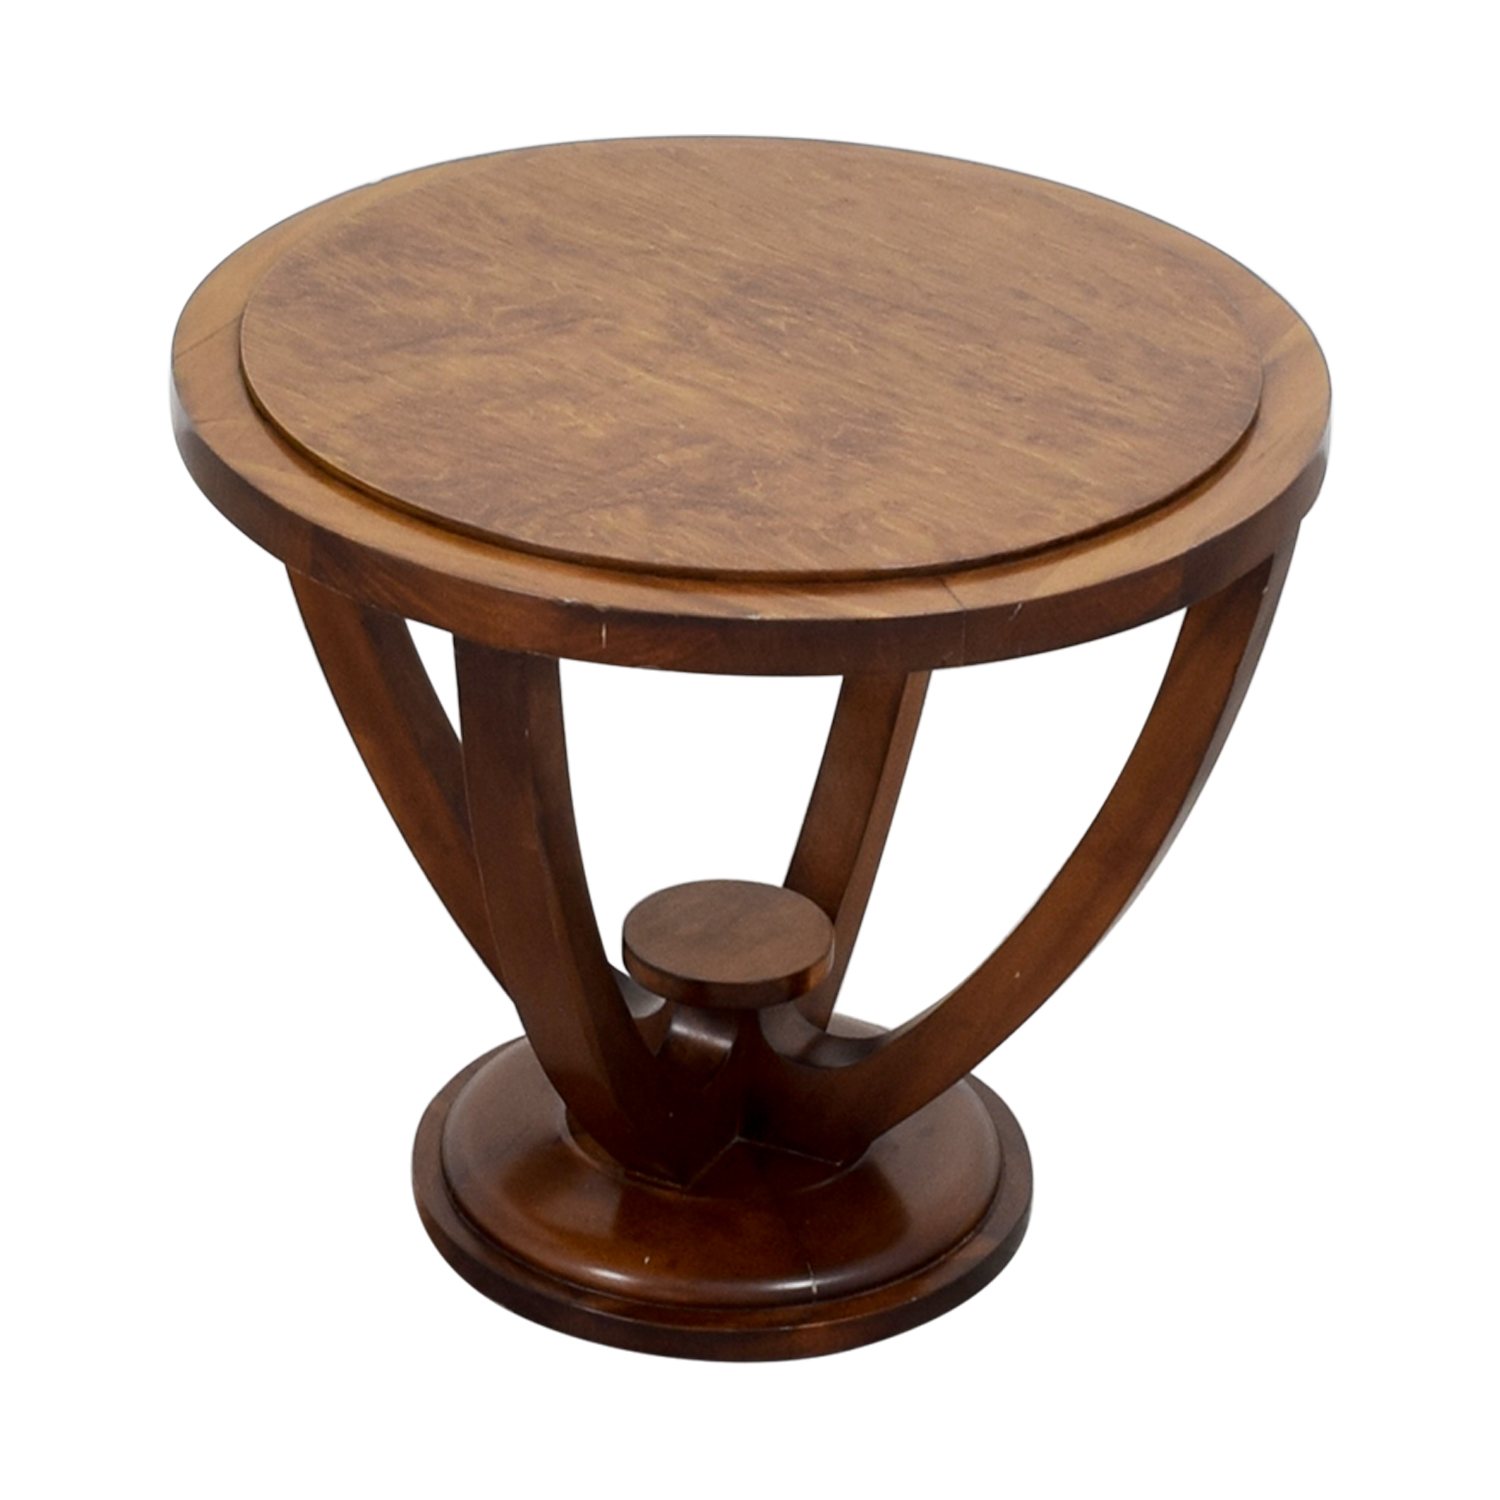 buy Furniture Masters Furniture Masters Round Wood End Table online